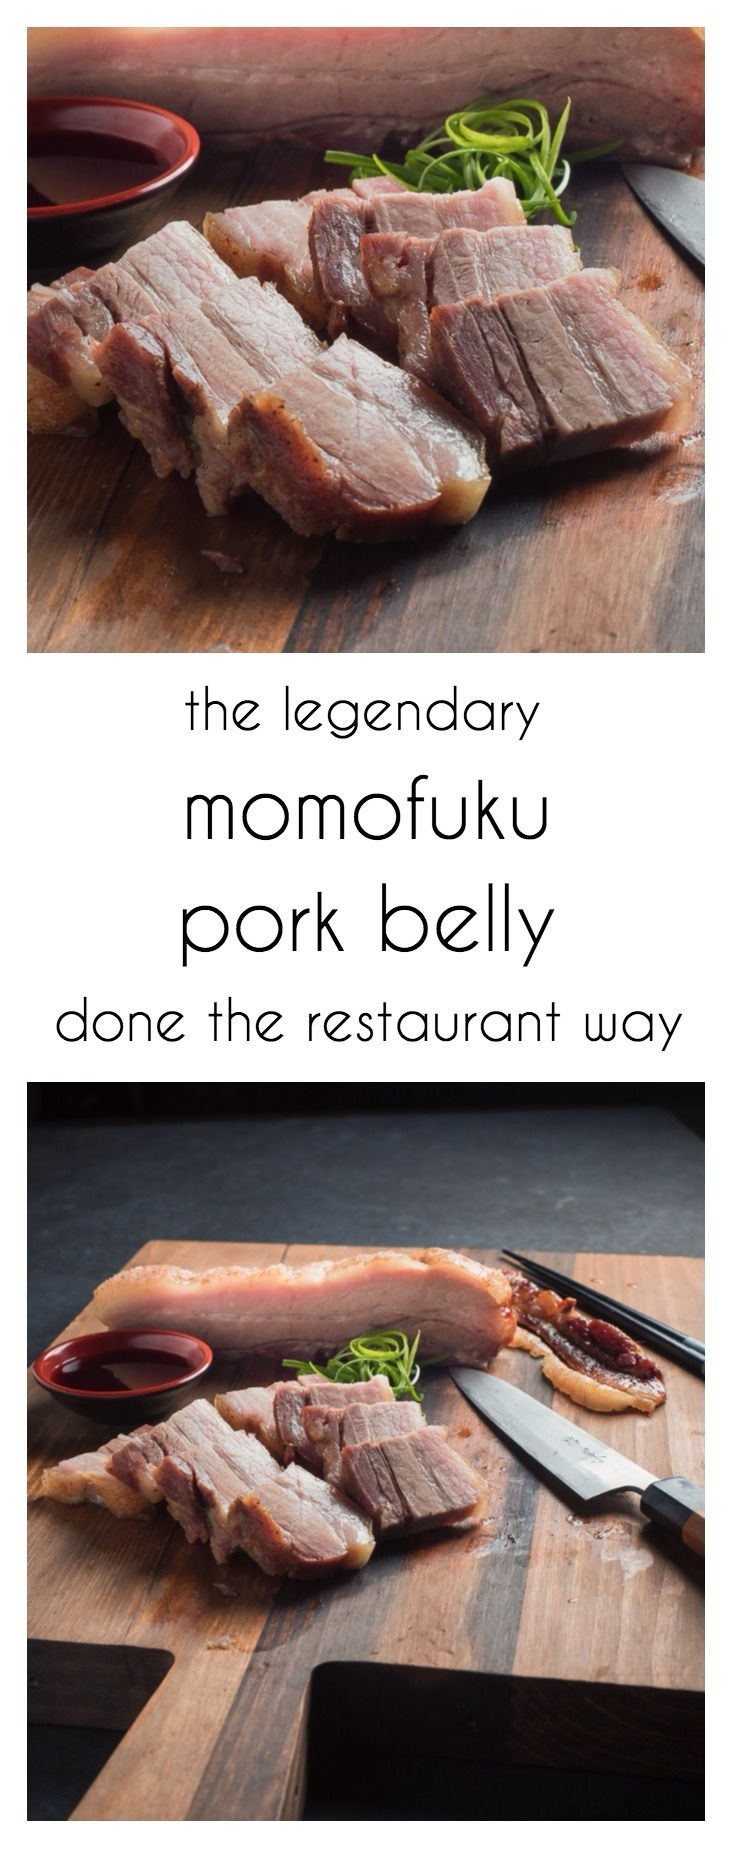 This is how you make momofuku pork belly like they do in the restaurant.